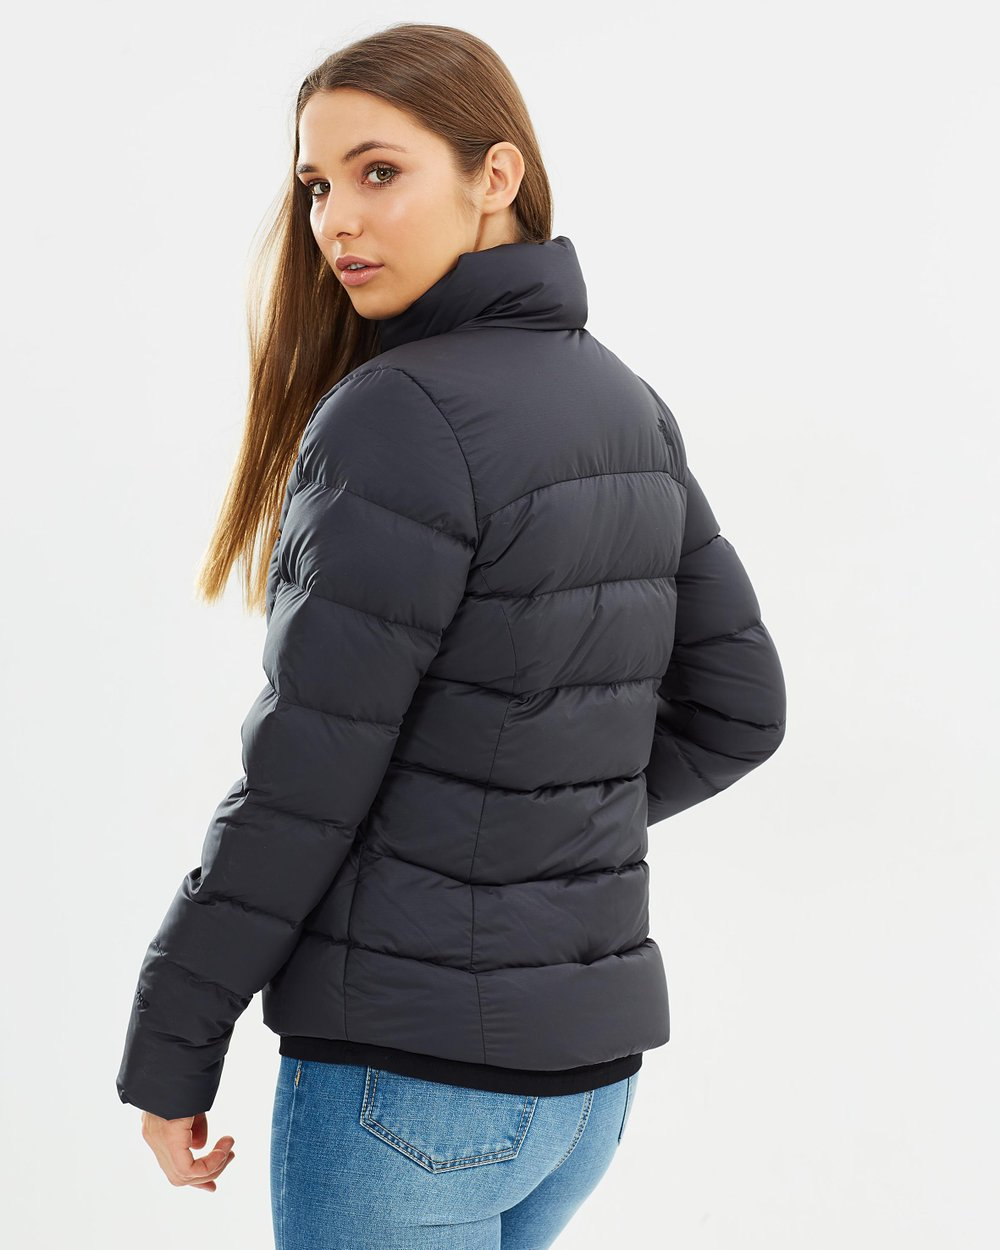 1bdb8fa03d Women s Nuptse Jacket by The North Face Online